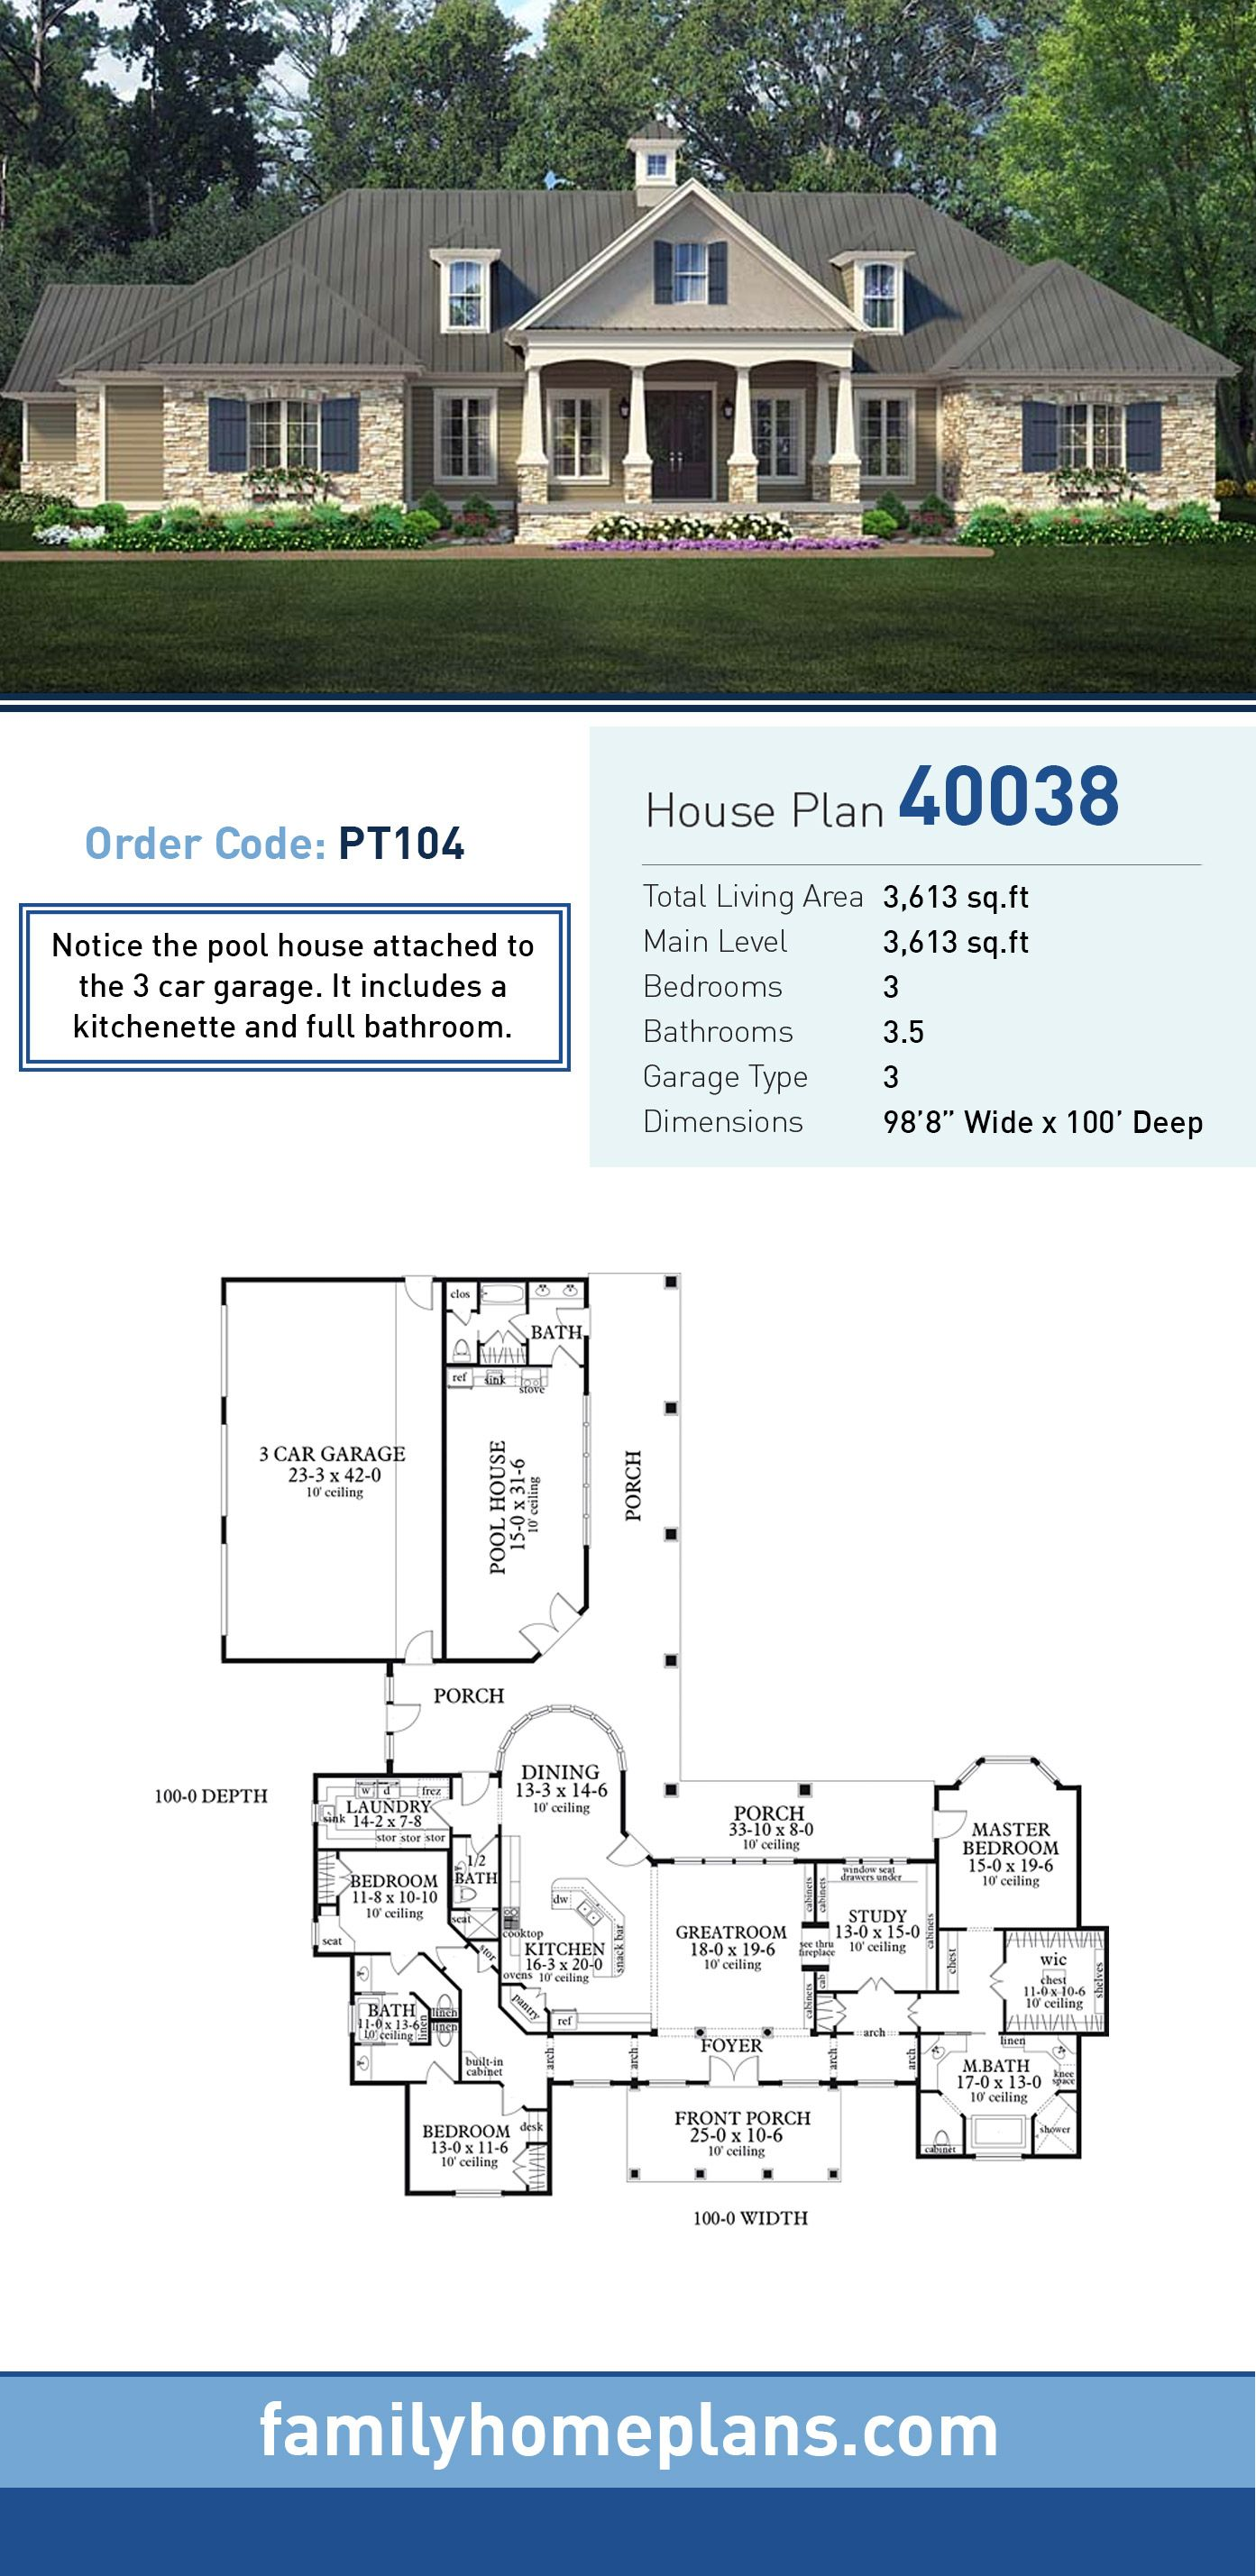 Southern Style House Plan 40038 With 3 Bed 4 Bath 3 Car Garage Ranch House Plans Pool House Plans Barn Homes Floor Plans